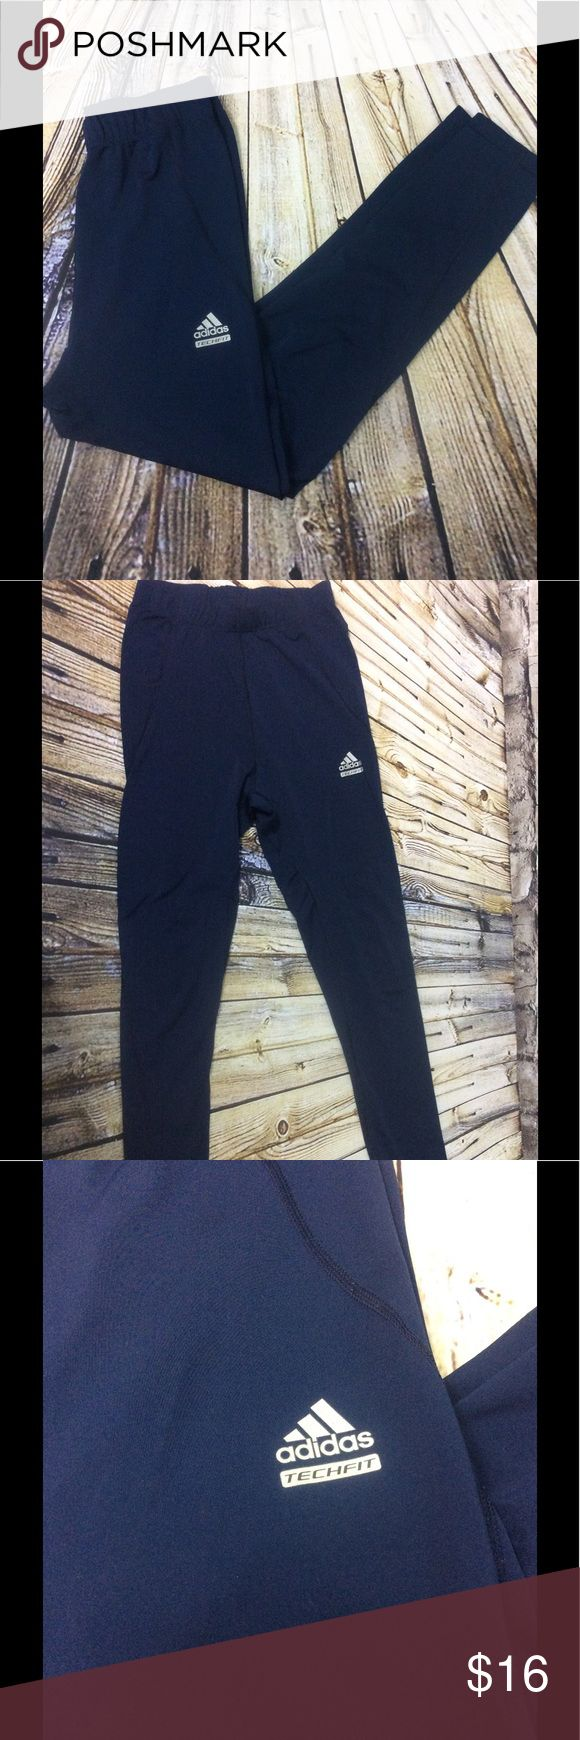 Adidas High Waist Leggings Running Tights High waist Women's adidas leggings or running tights size large. Has elastic waist, fabric is the thinner stretch type legging...so Greta for running etc. Navy blue, in good condition, light wear from use but no pilling. adidas Pants Leggings